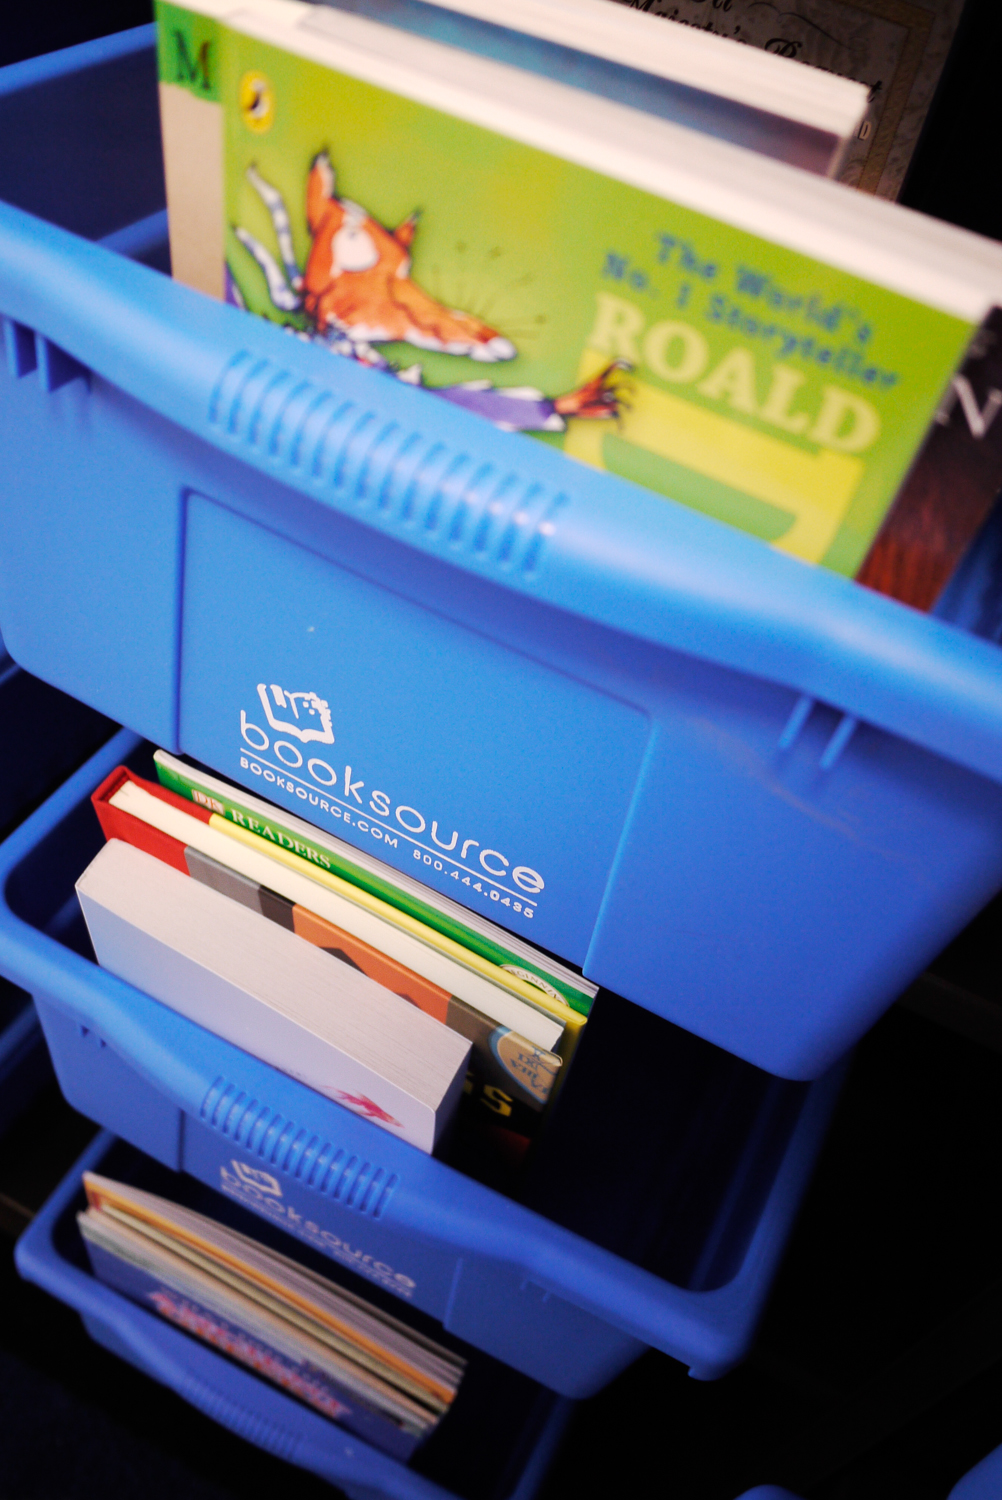 Blue Bin Book Collections